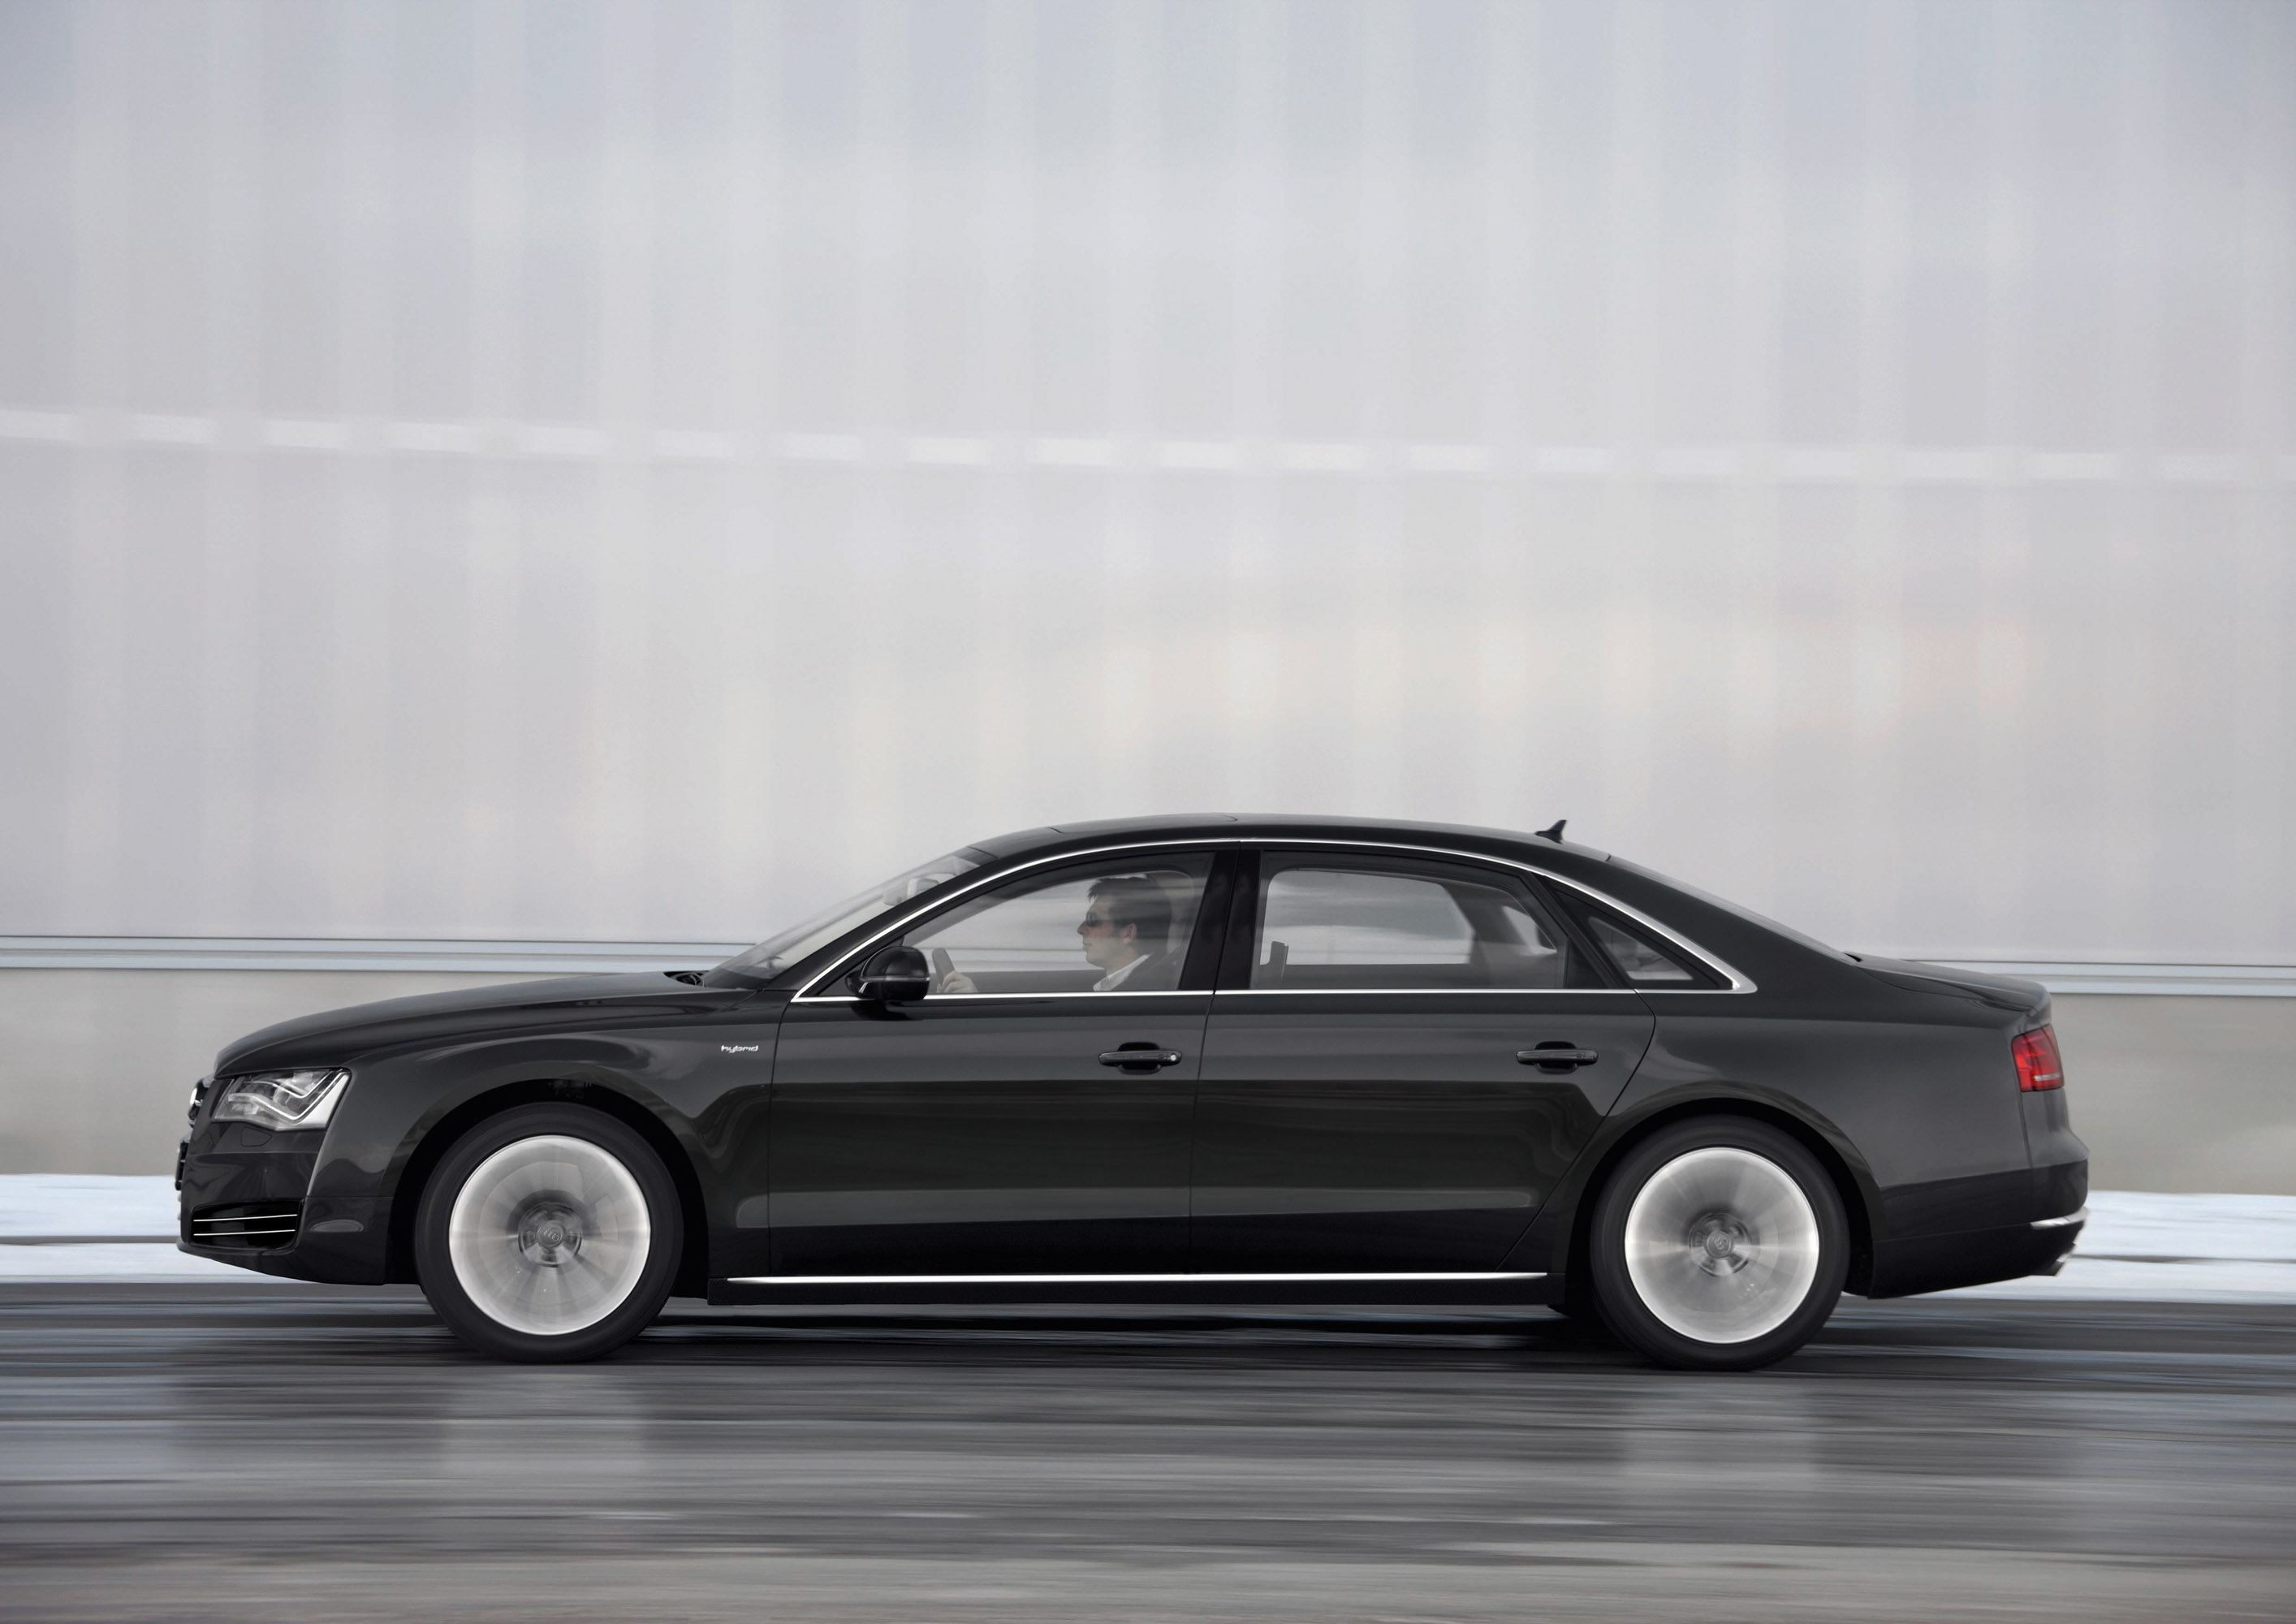 suspension raise transport car sale which active and worth the crucial be knowing uses for lower to in can audi upgrade another luxury about electric s found things actuators